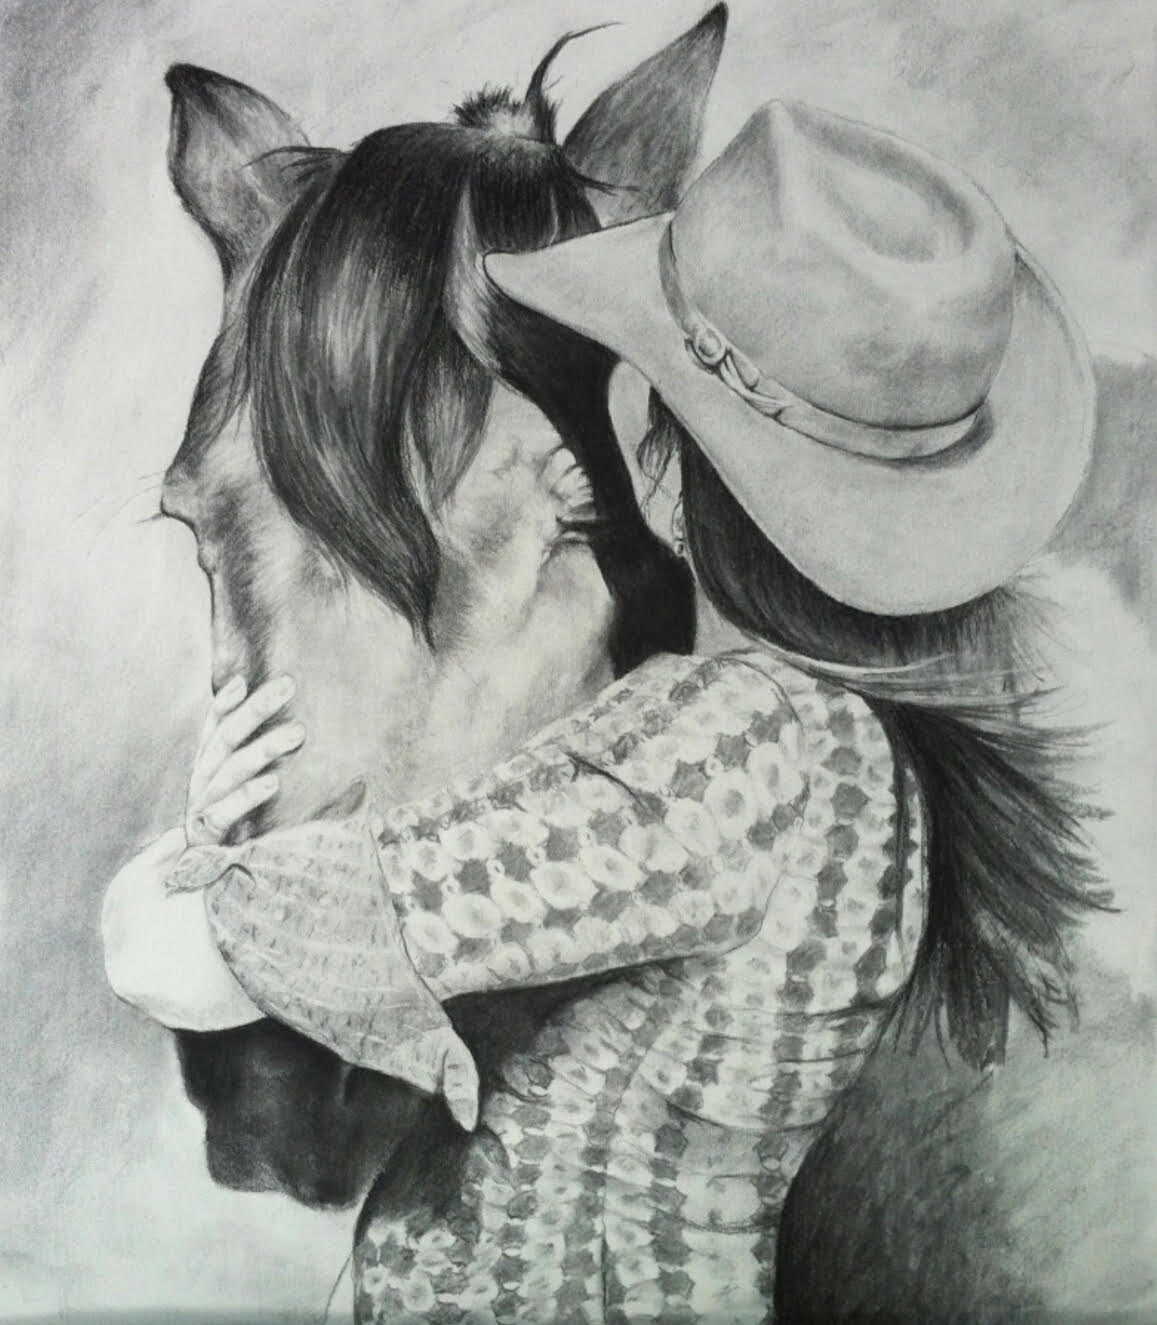 A drawing of Amitta kissing her horse by Jess Wiley